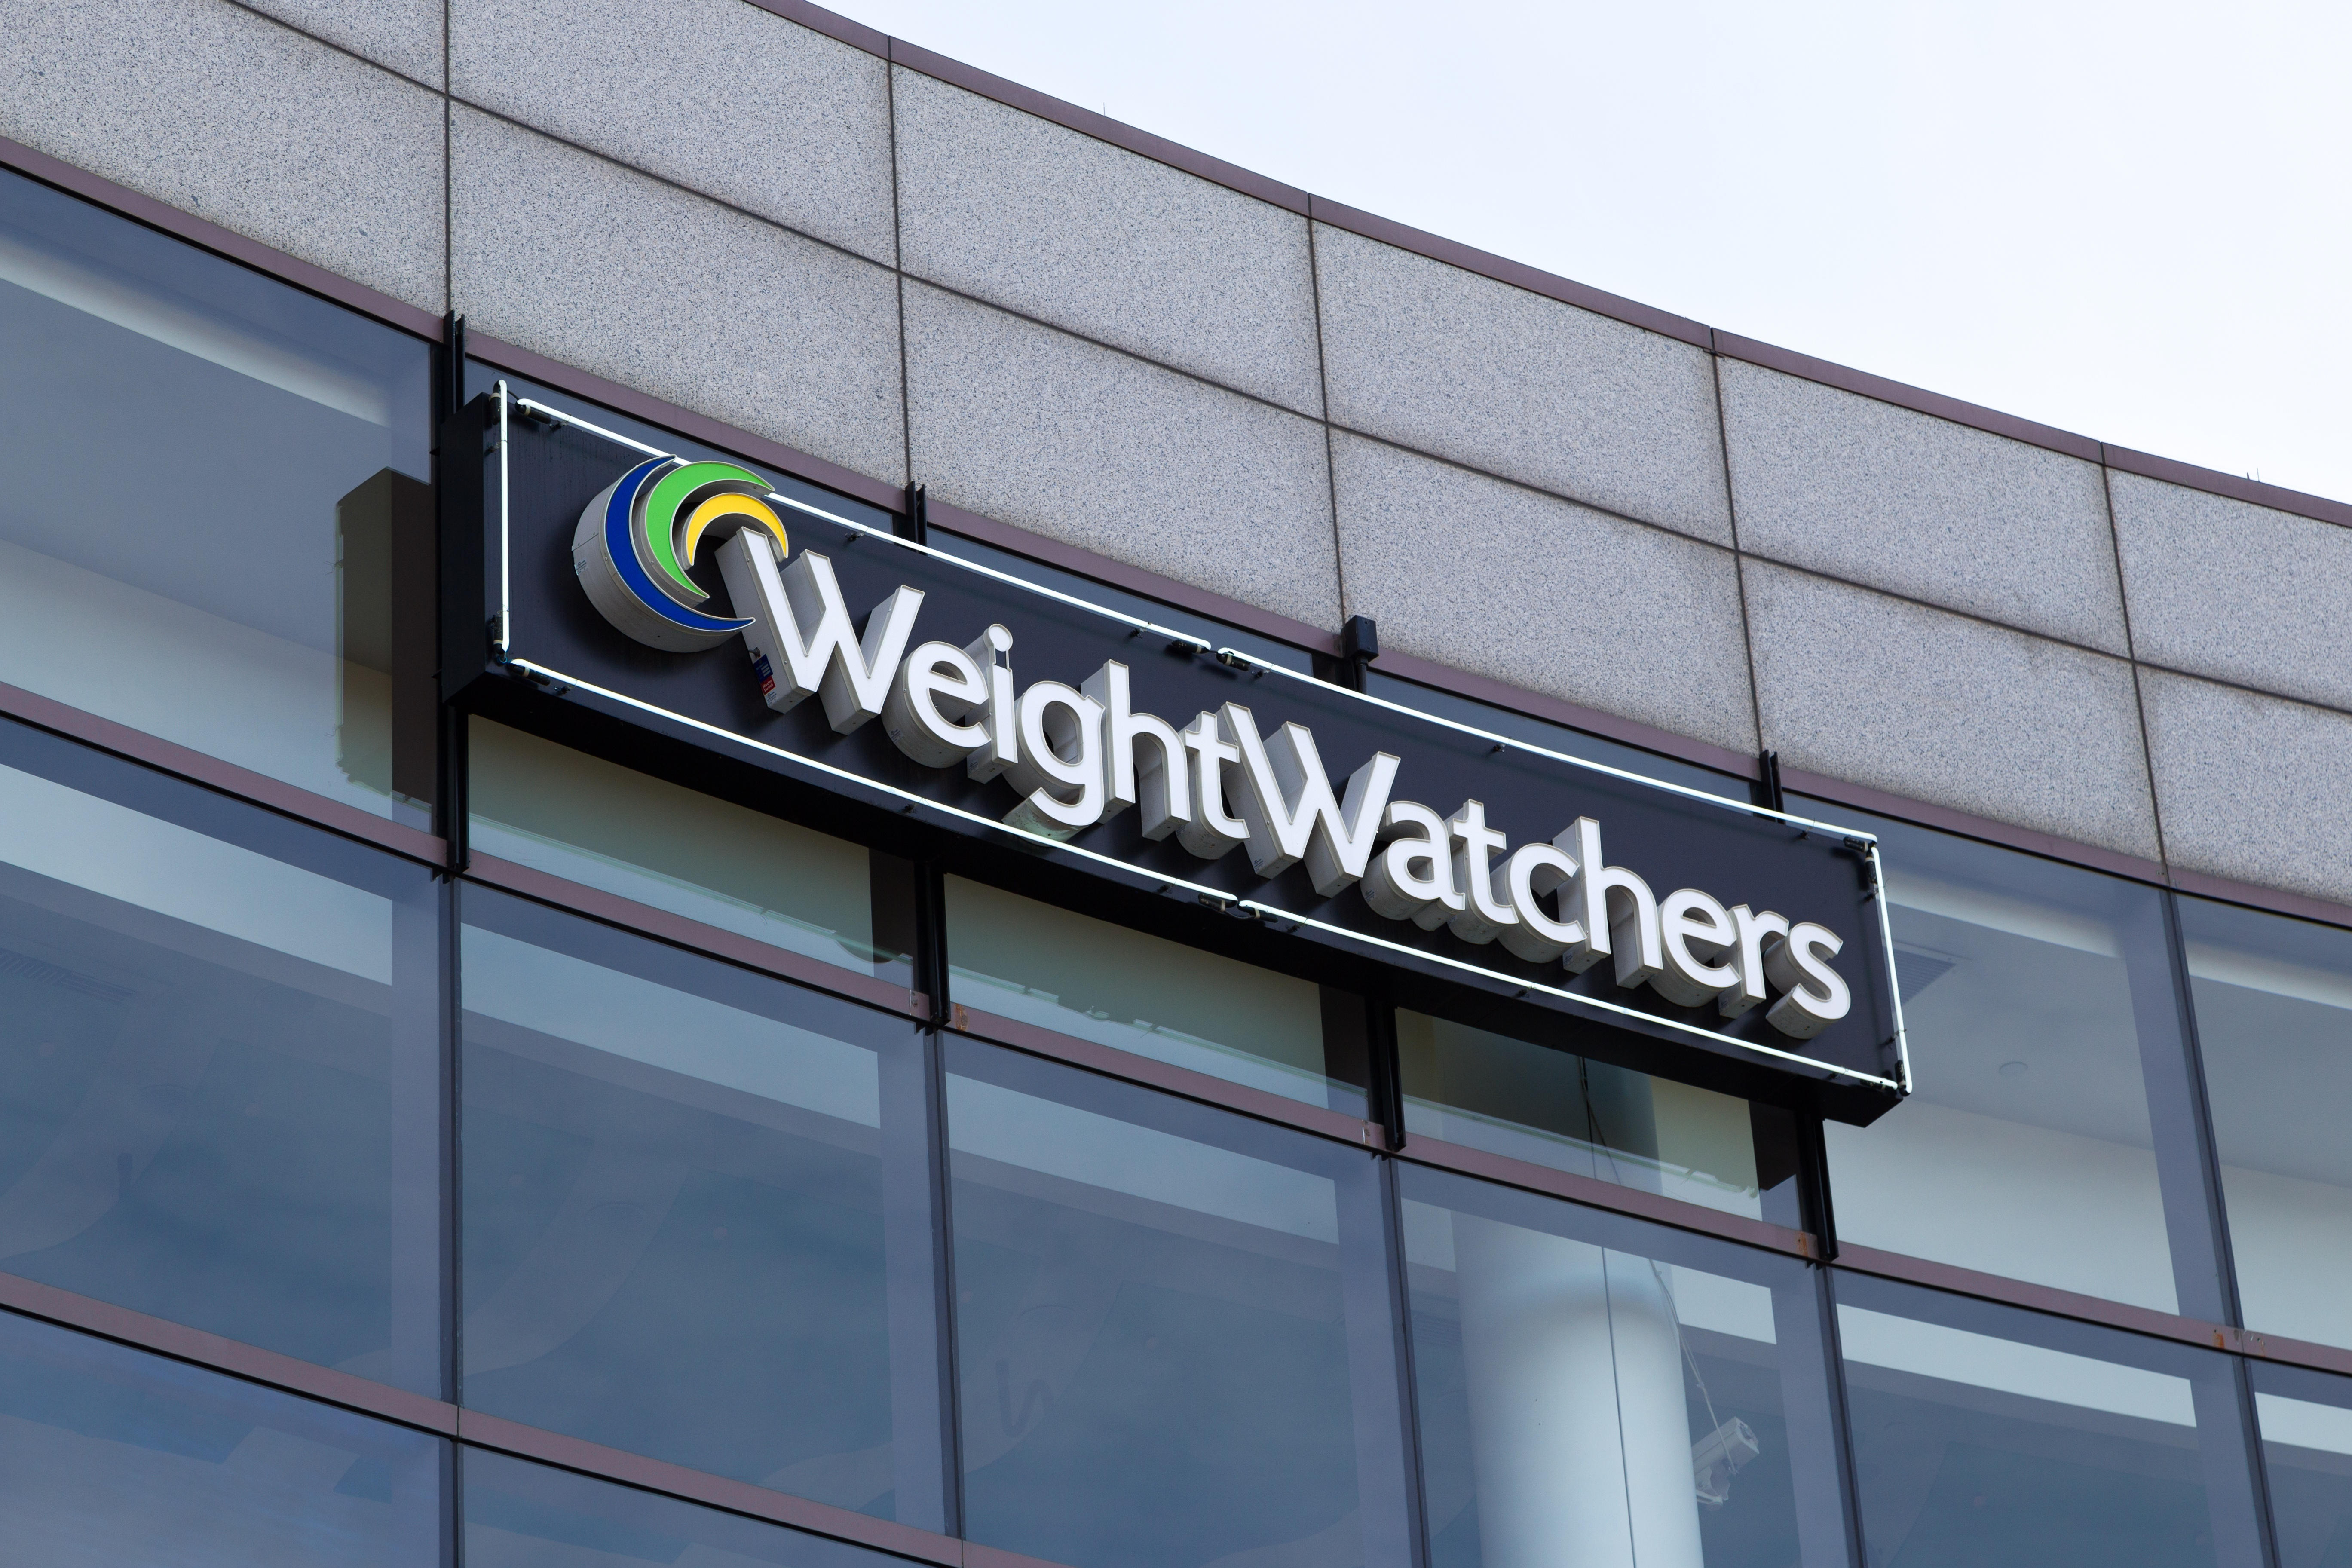 primary market research weight watchers